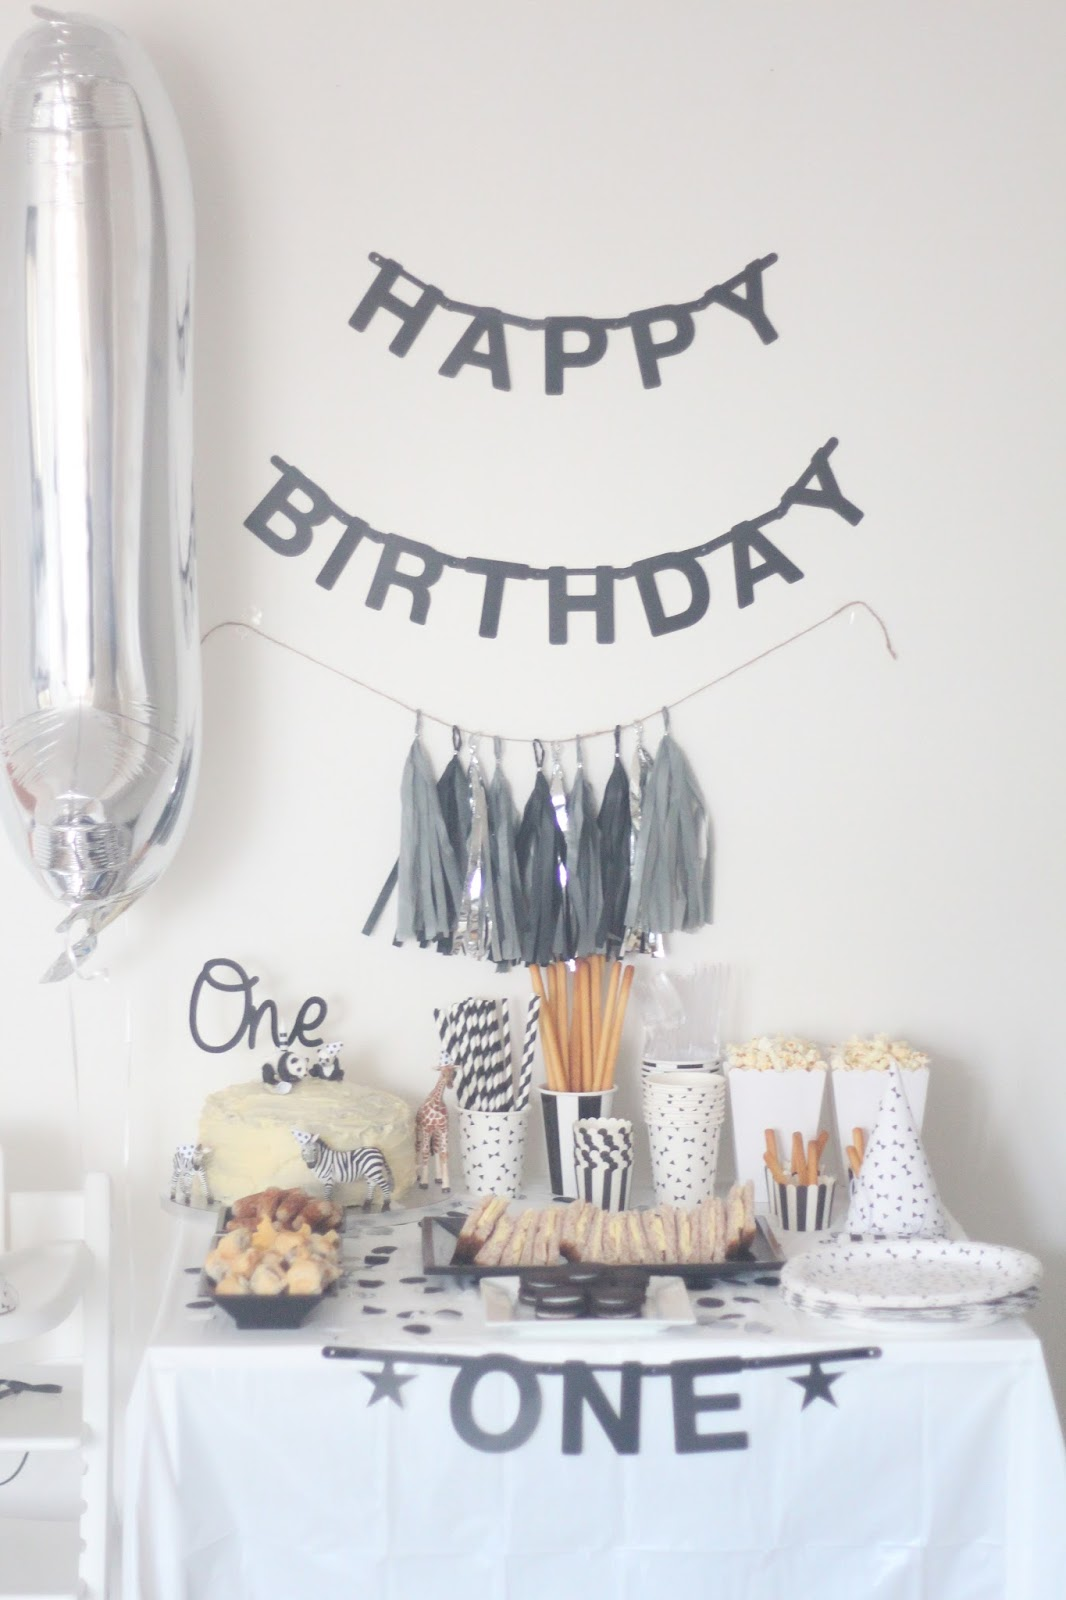 Monochrome first birthday party